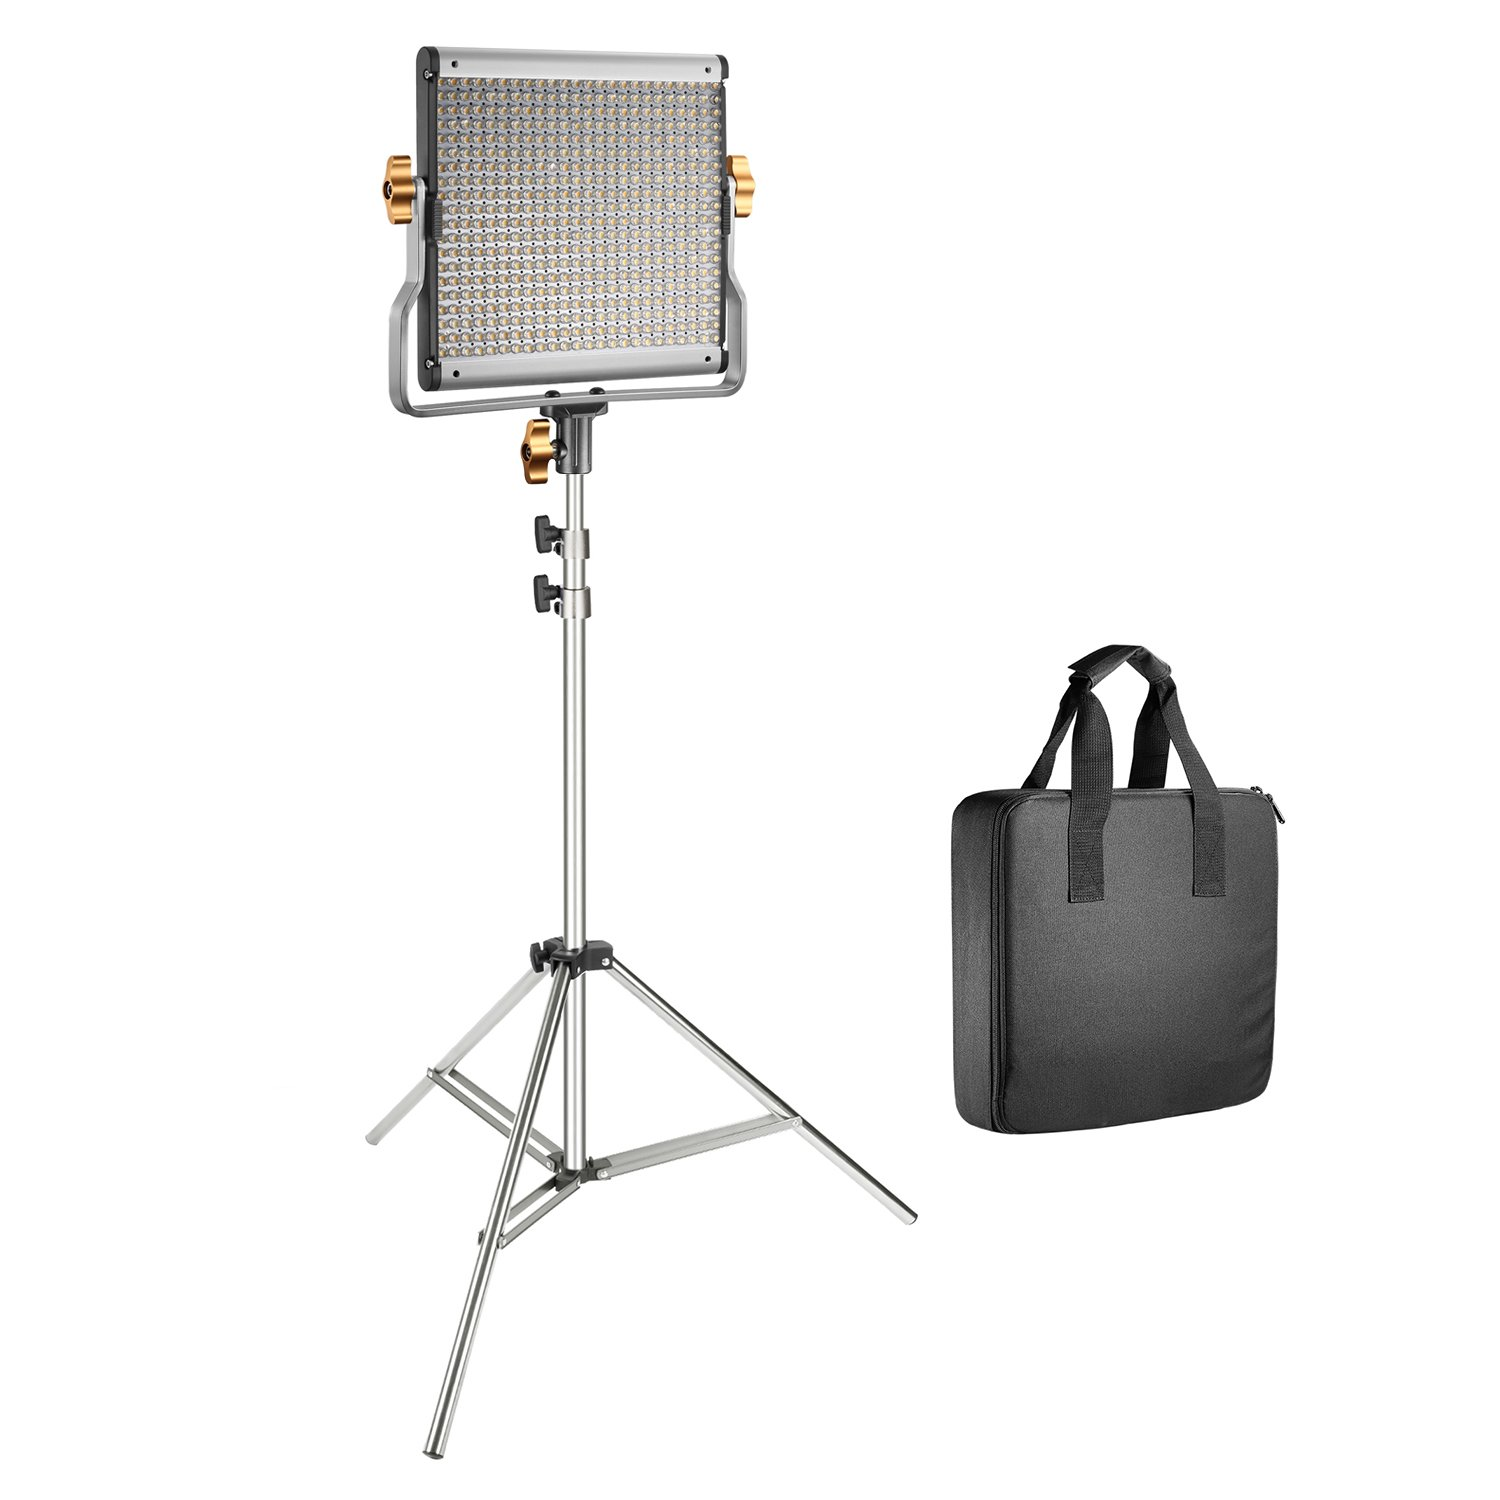 Neewer 480 LED Video Light with 78.7-inch Stainless Steel Light Stand Kit: Dimmable Bi-color LED Panel Lights with U Bracket (3200-5600K,CRI 96+) for Photo Studio Portrait, YouTube Video Photography 90093298